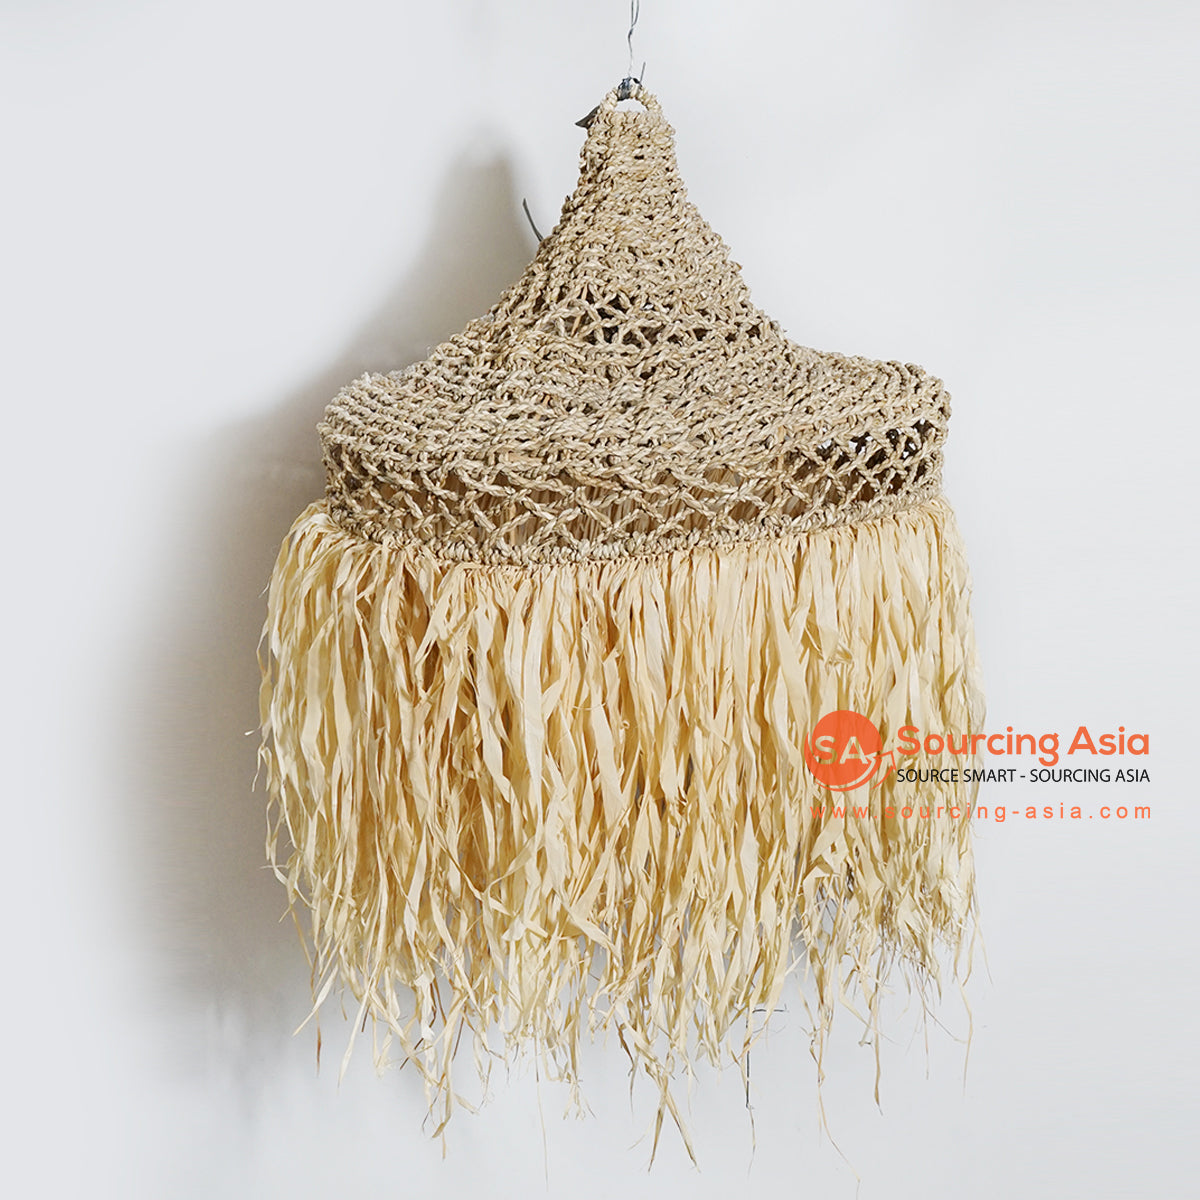 HBSC241 SEA GRASS HANGING LAMP